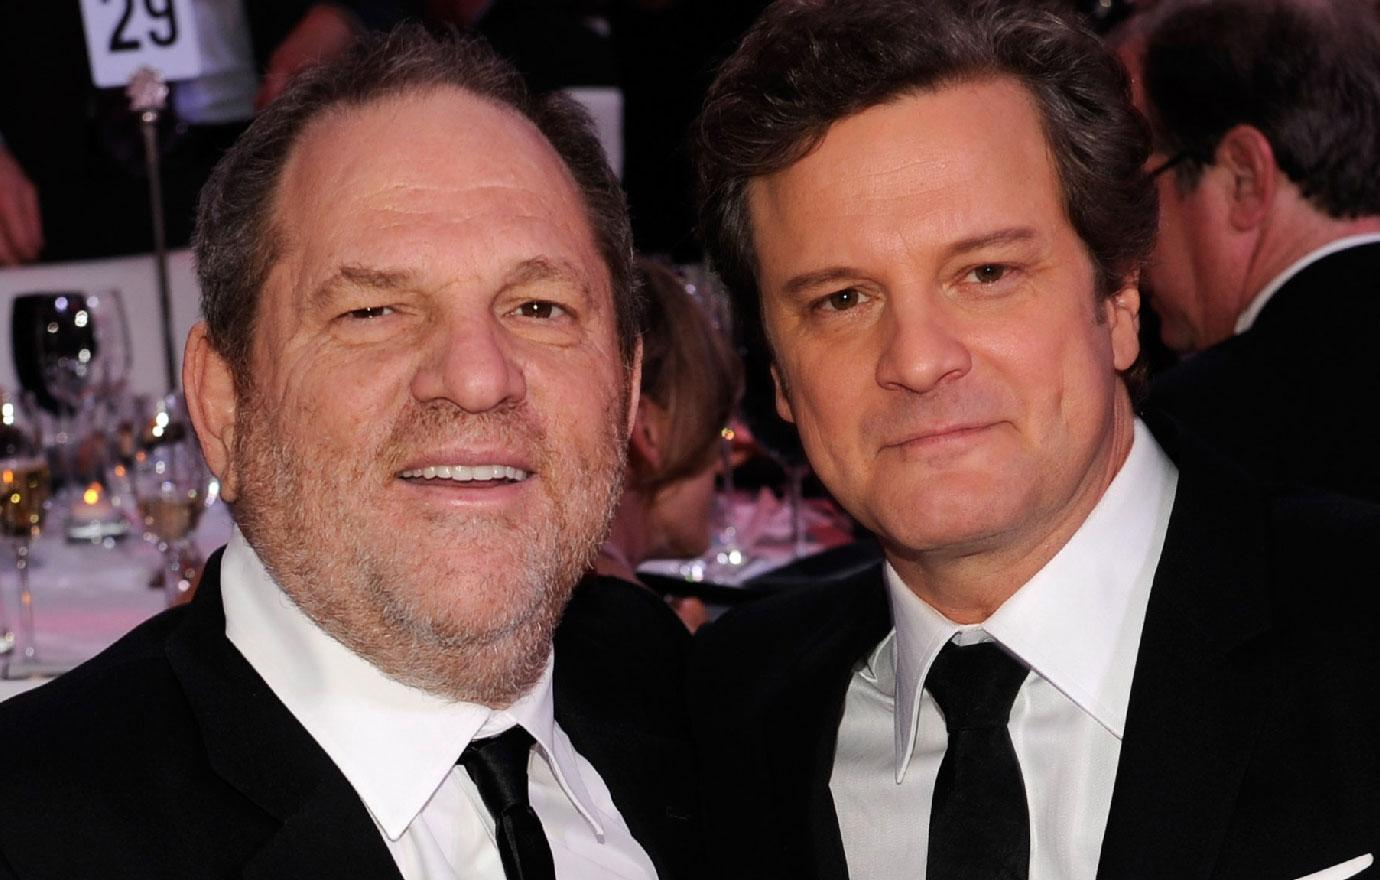 Colin Firth Regrets Not Speaking Up About Harvey Weinstein Abuse